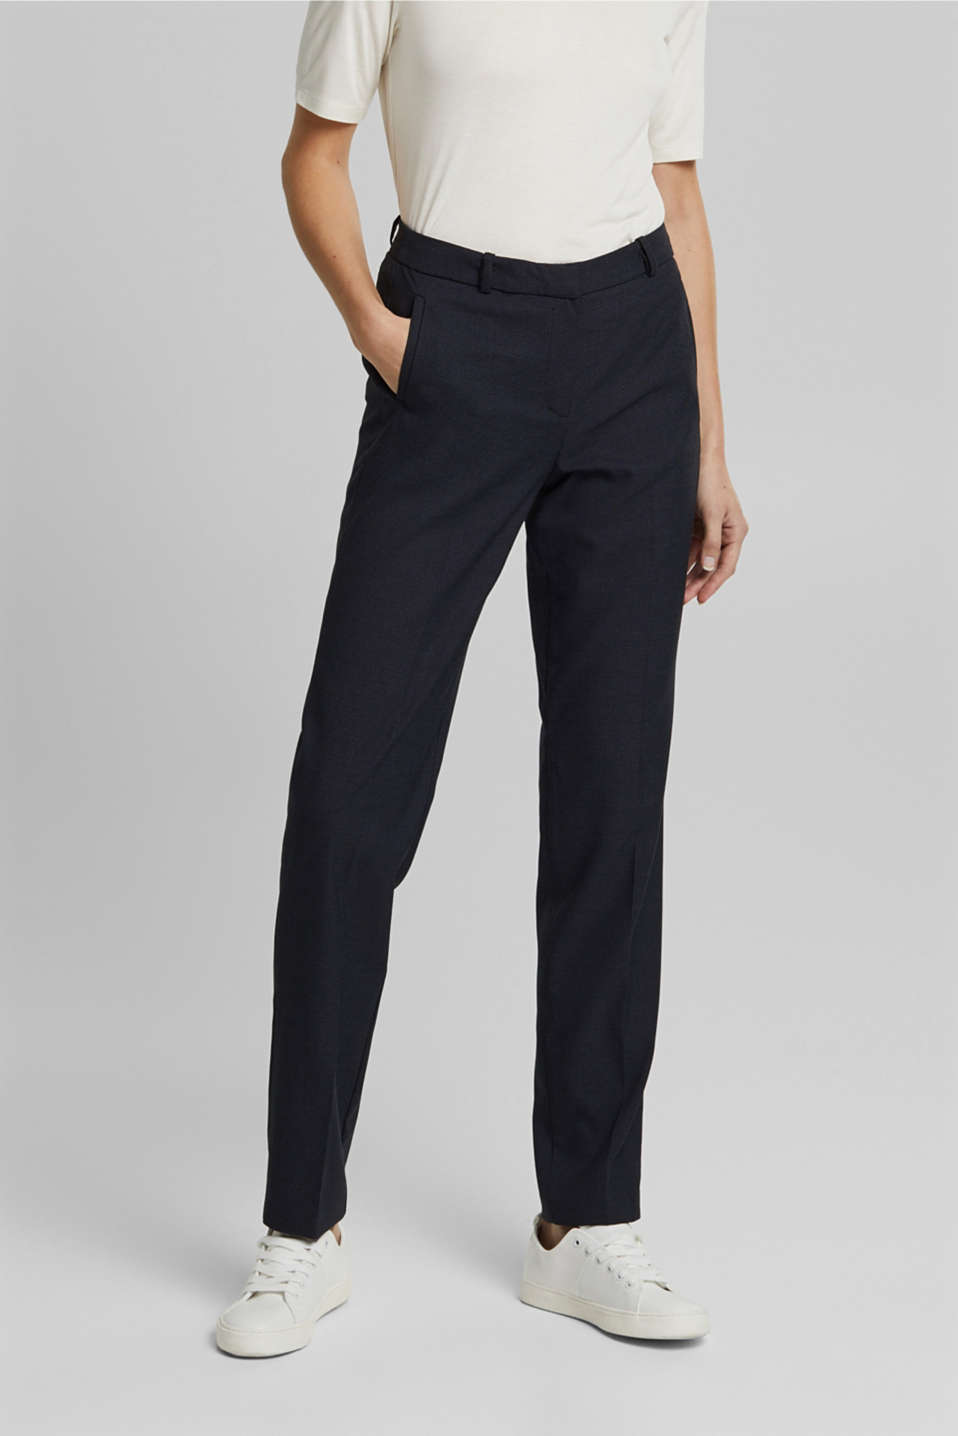 Esprit - STRUCTURE Mix + Match Stretch-Pants